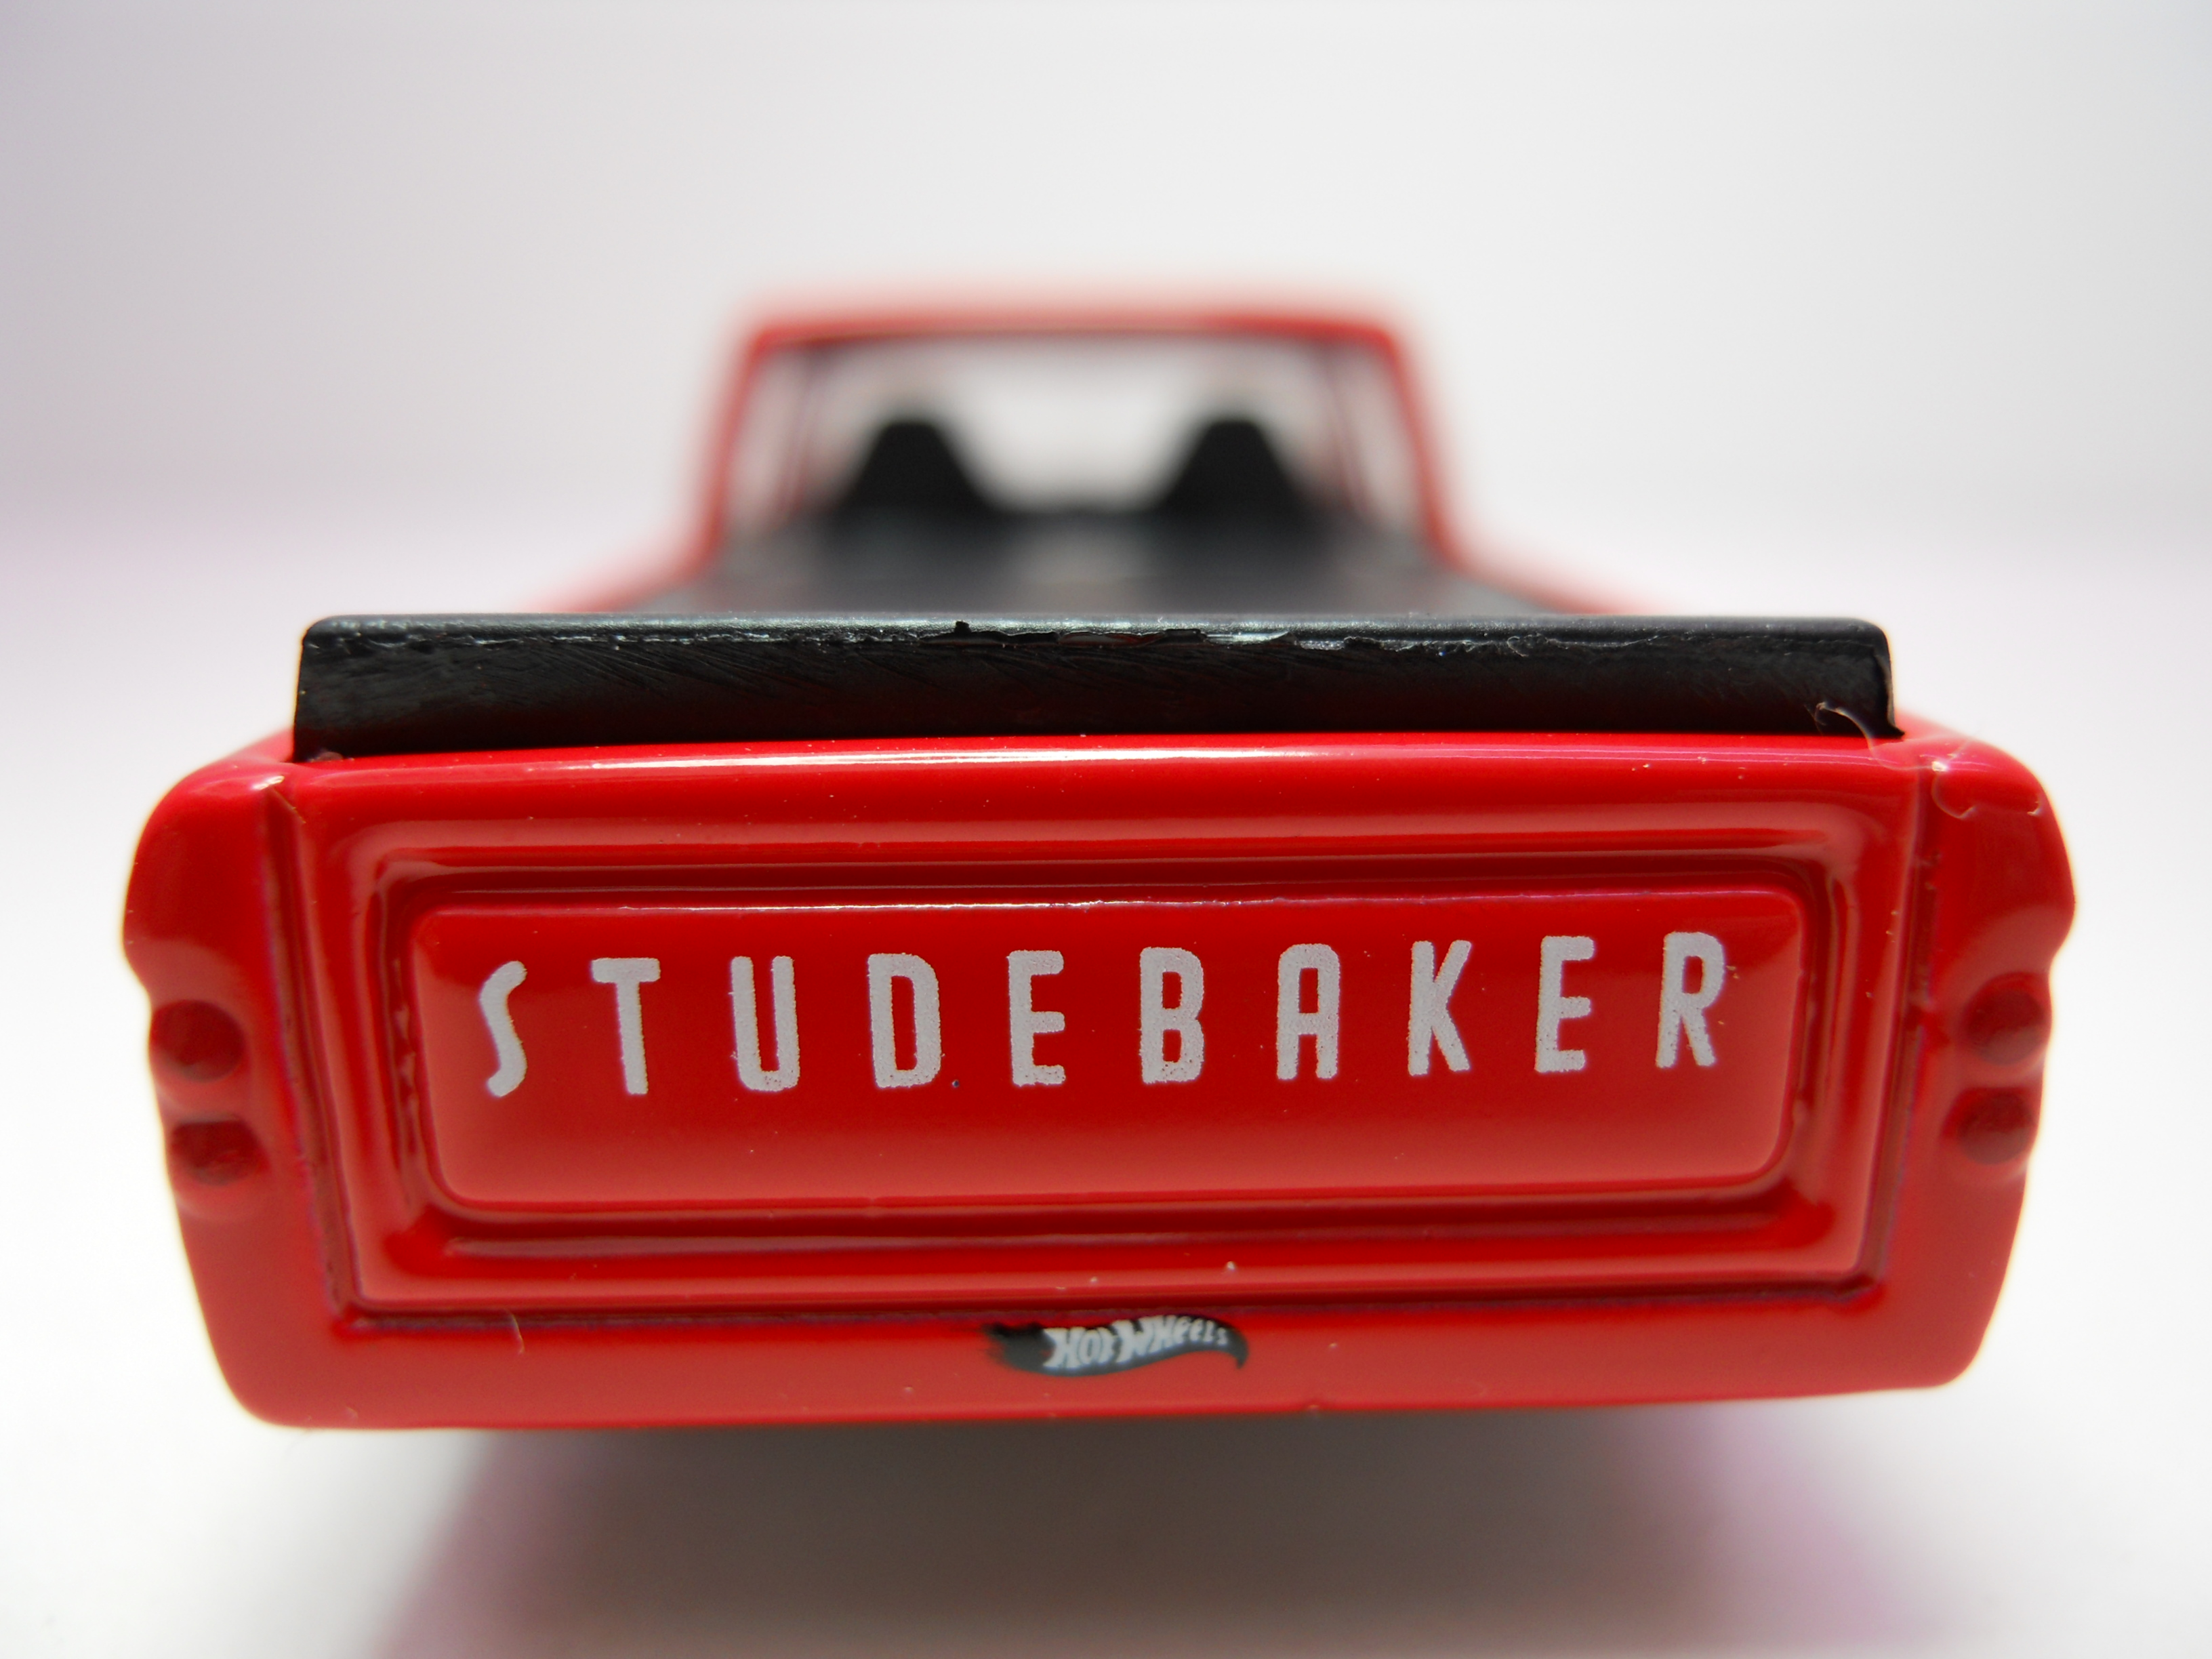 hot wheels 65 studebaker champ (4) | Flickr - Photo Sharing!